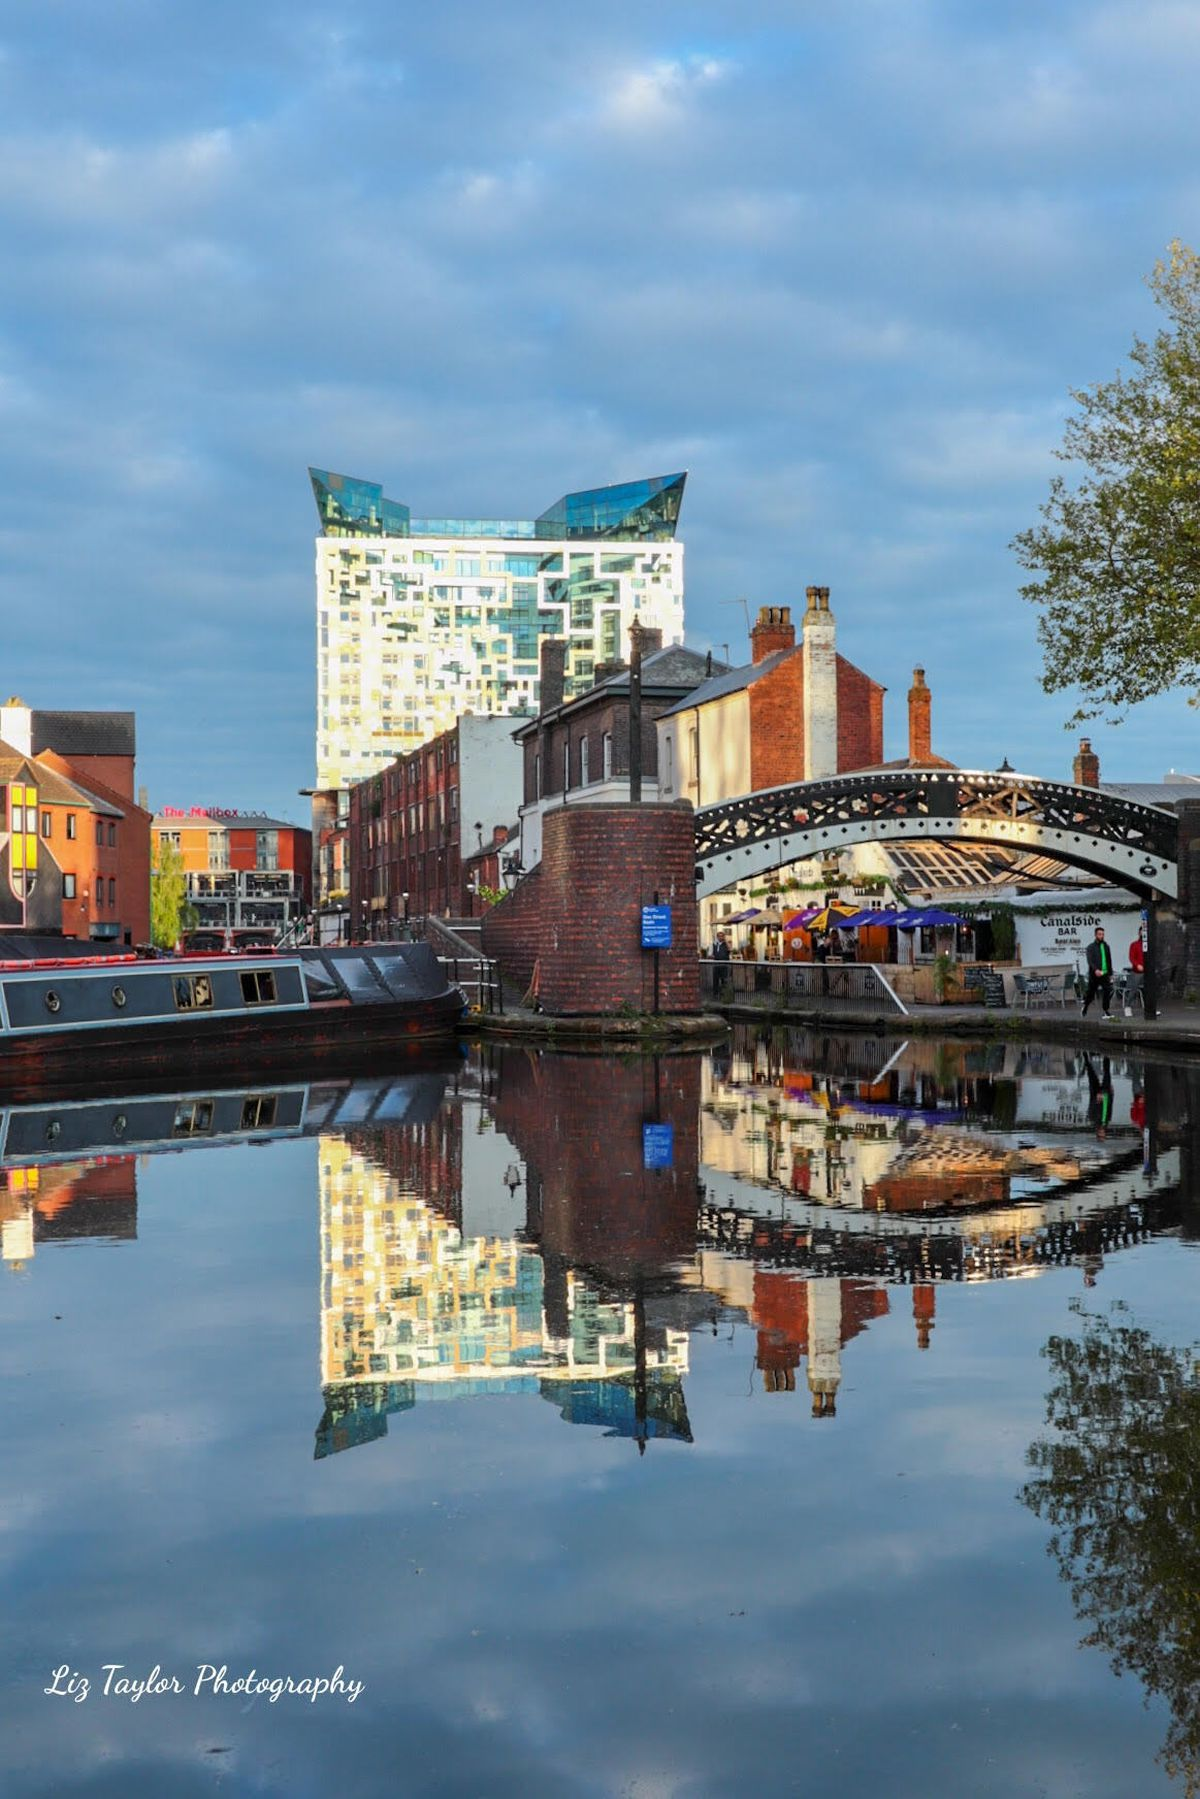 The Cube make a stiking addition to the skyline and is reflected in the canal in Birmingham. Photo by Liz Taylor